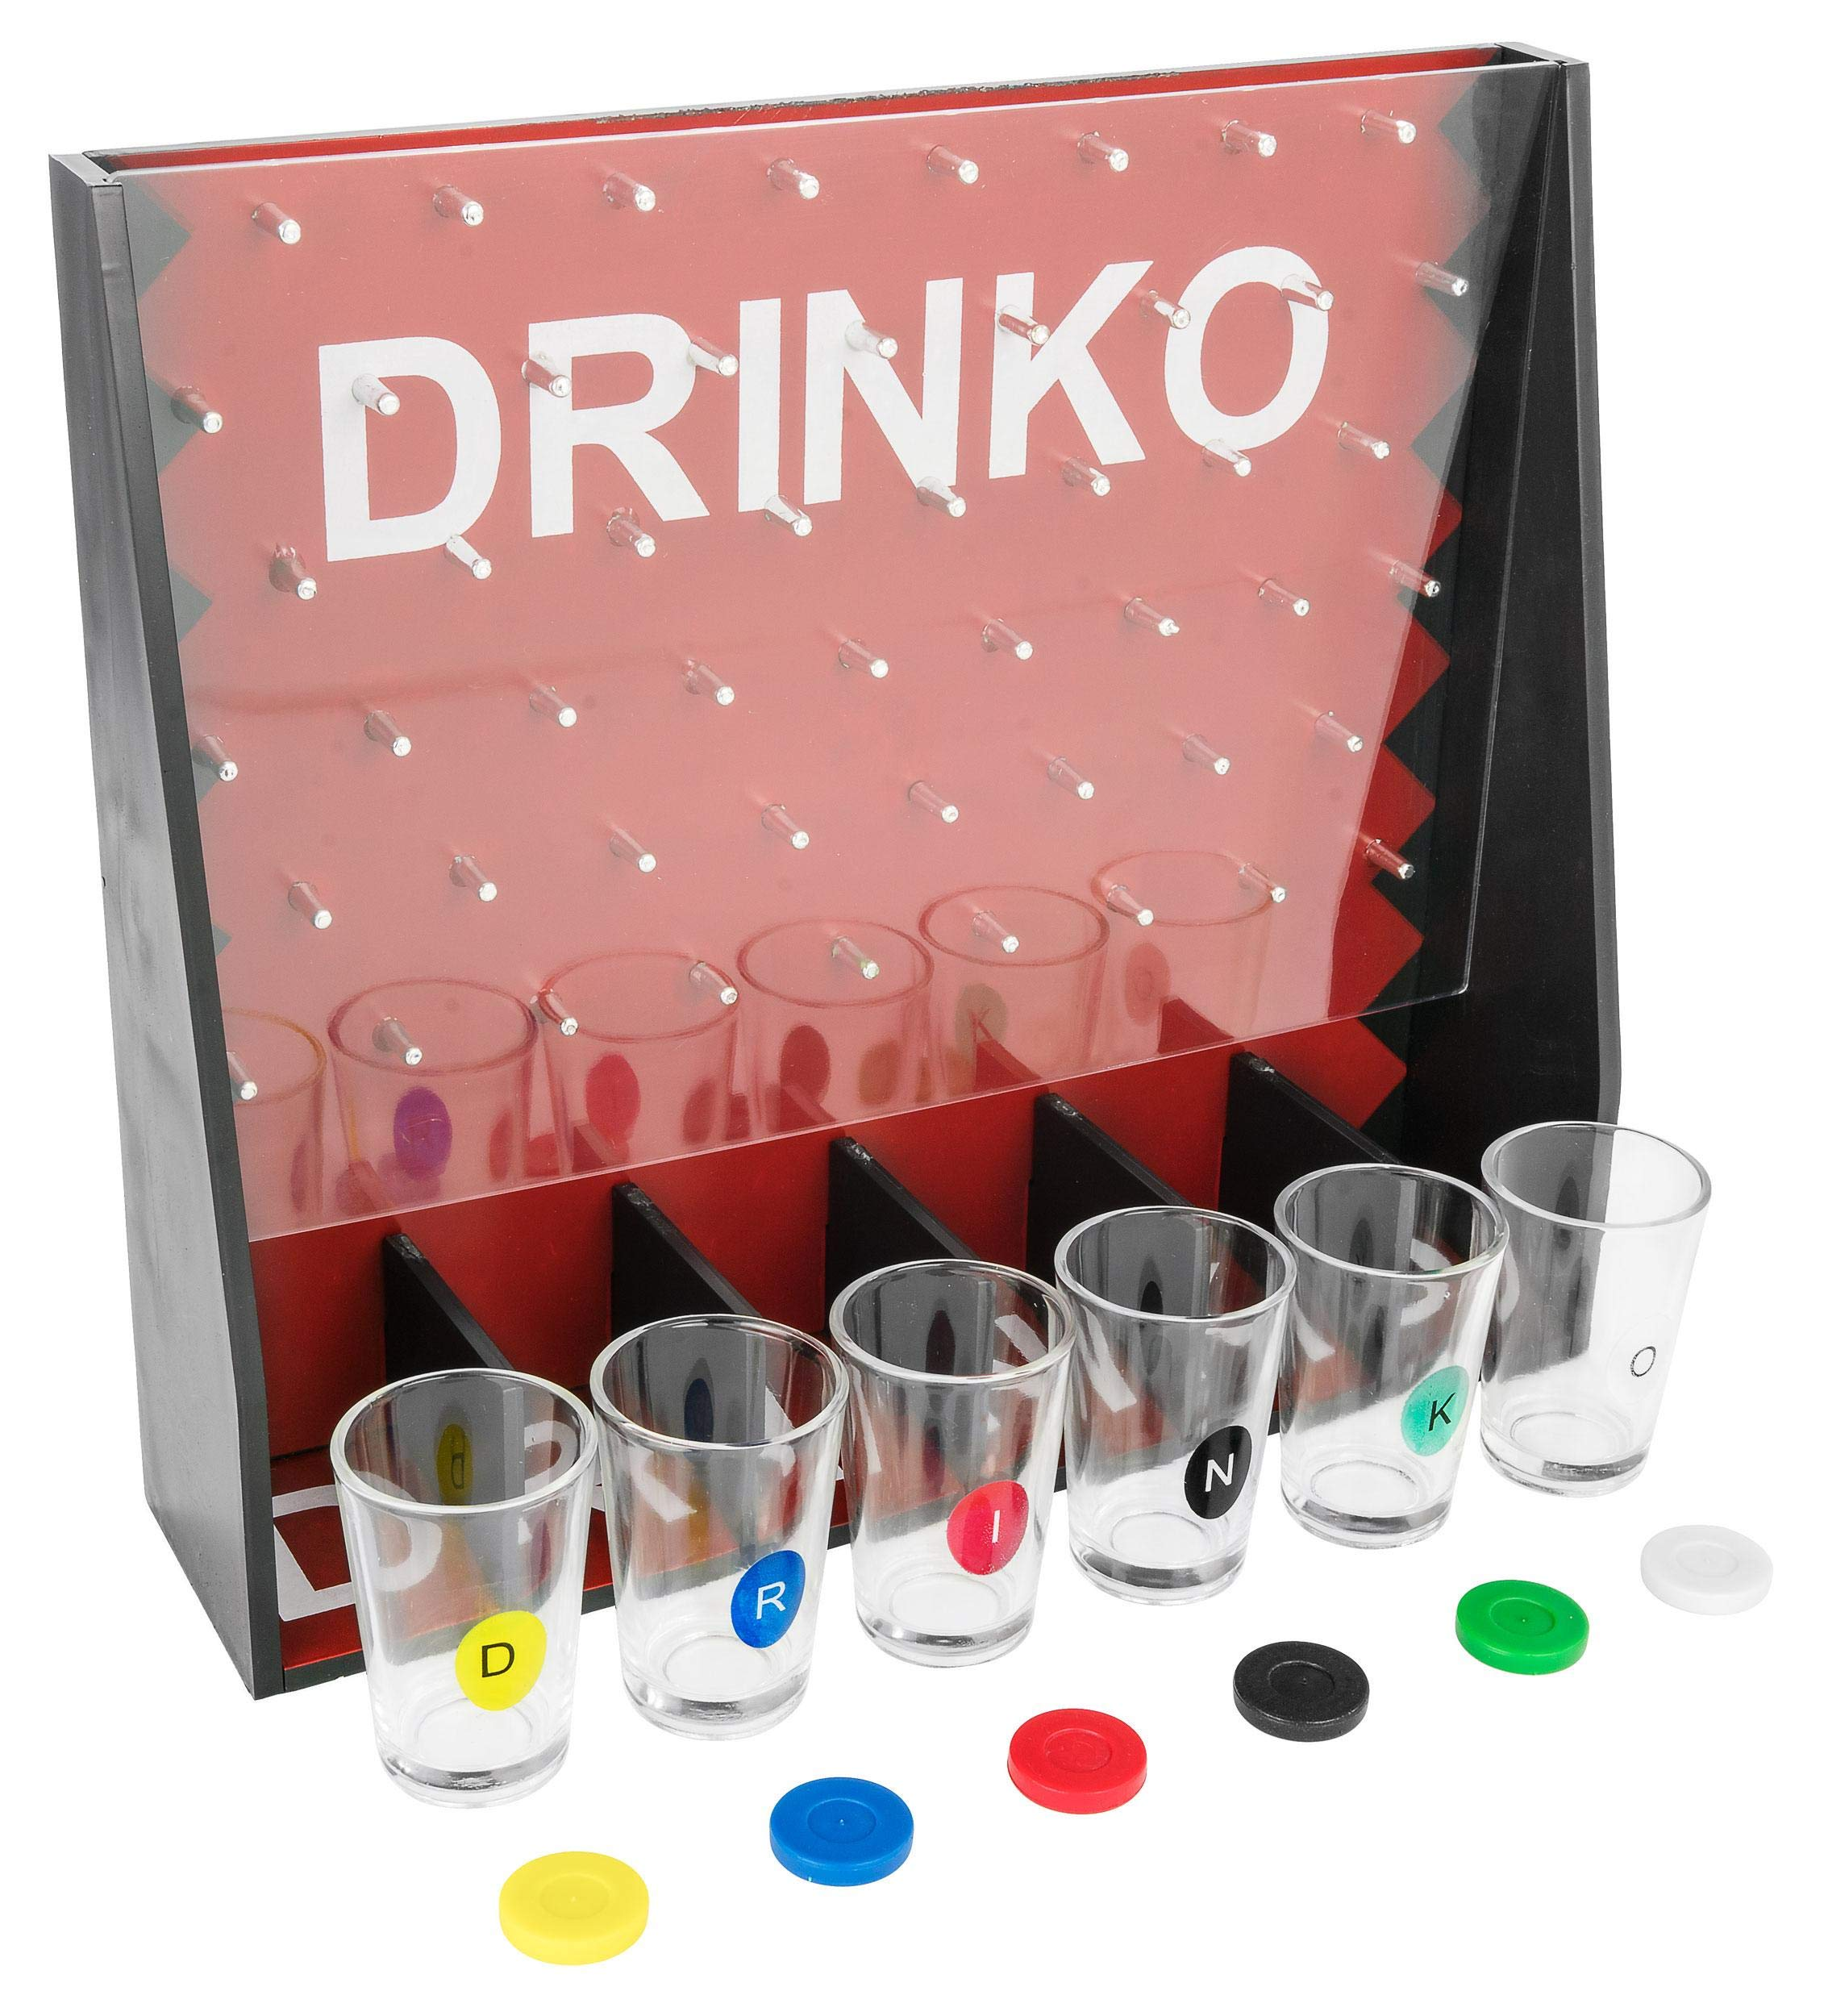 DRINKO Drinking Game - Fairly Odd Novelties - Fun Social Shot Glass Party Game for Groups / Couples by Fairly Odd Novelties (Image #3)